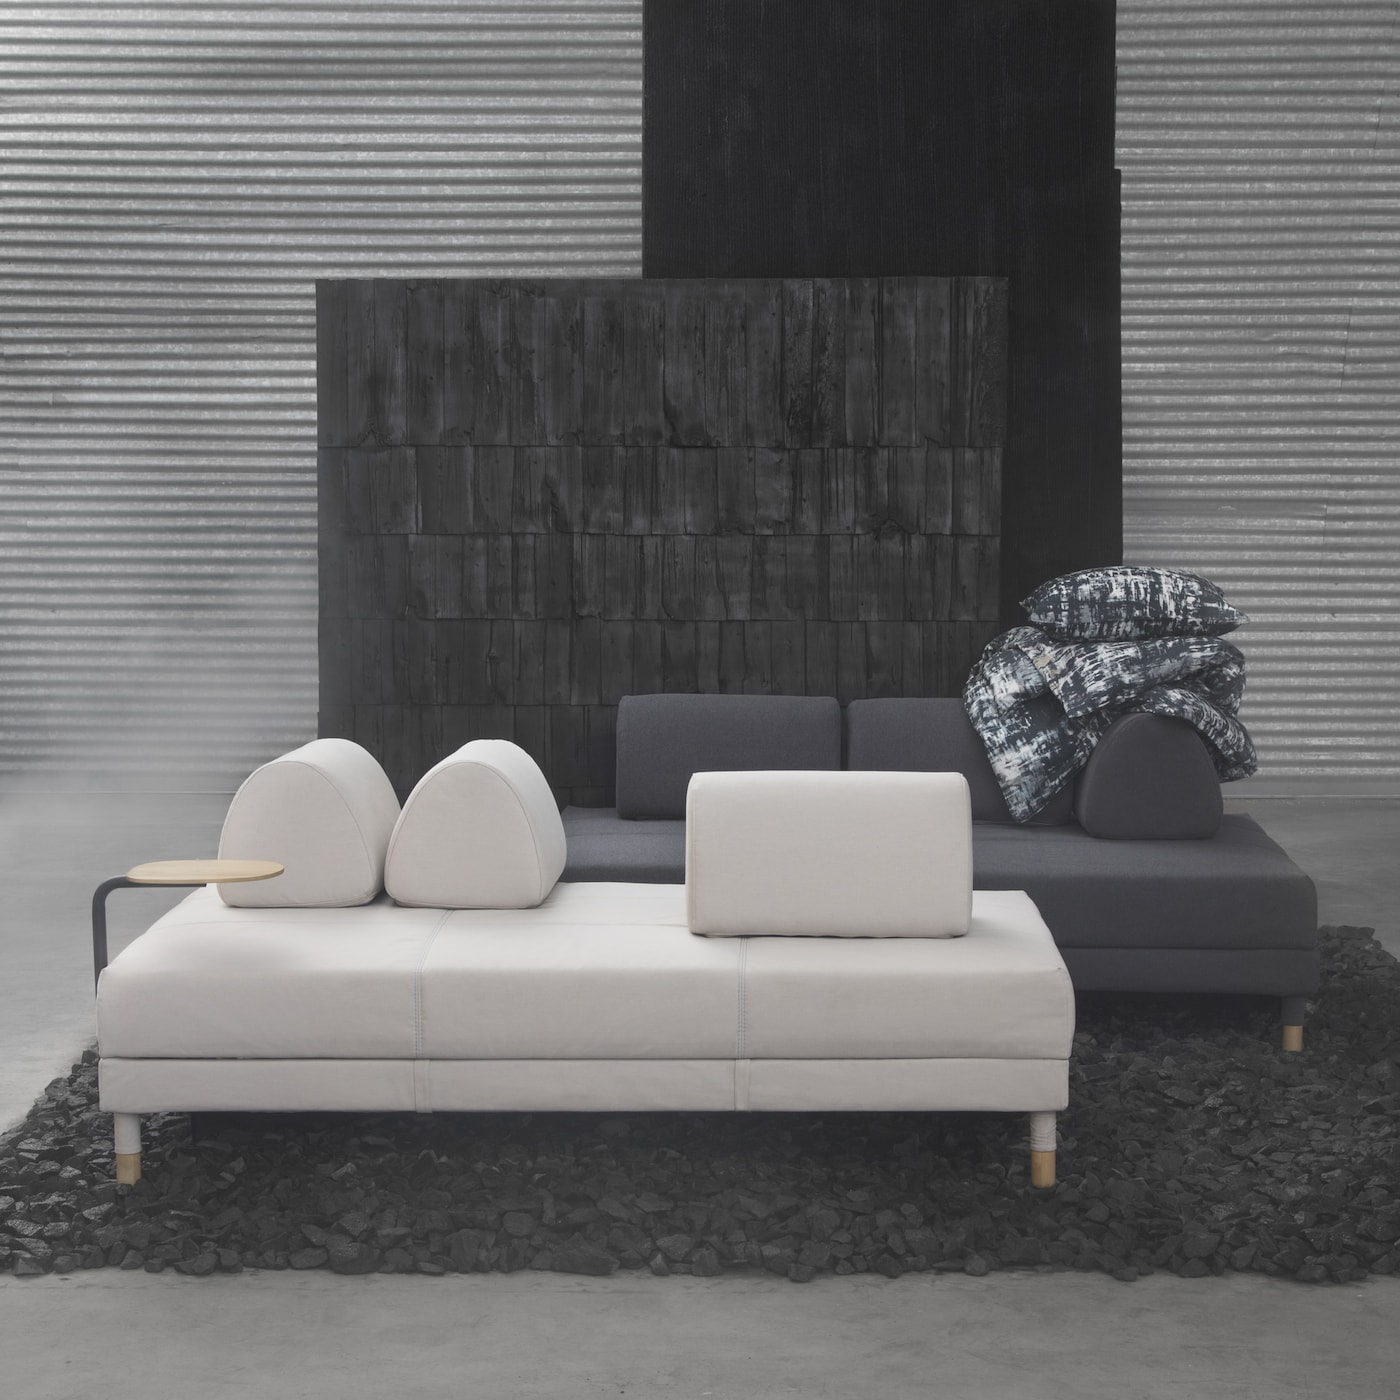 The cool, minimalist IKEA FLOTTEBO sofa-bed comes in beige, dark grey or green covers, you can even attach a small side table. The loose cushions of the sofa bed can be moved freely depending on how you want to sit or style the sofa.